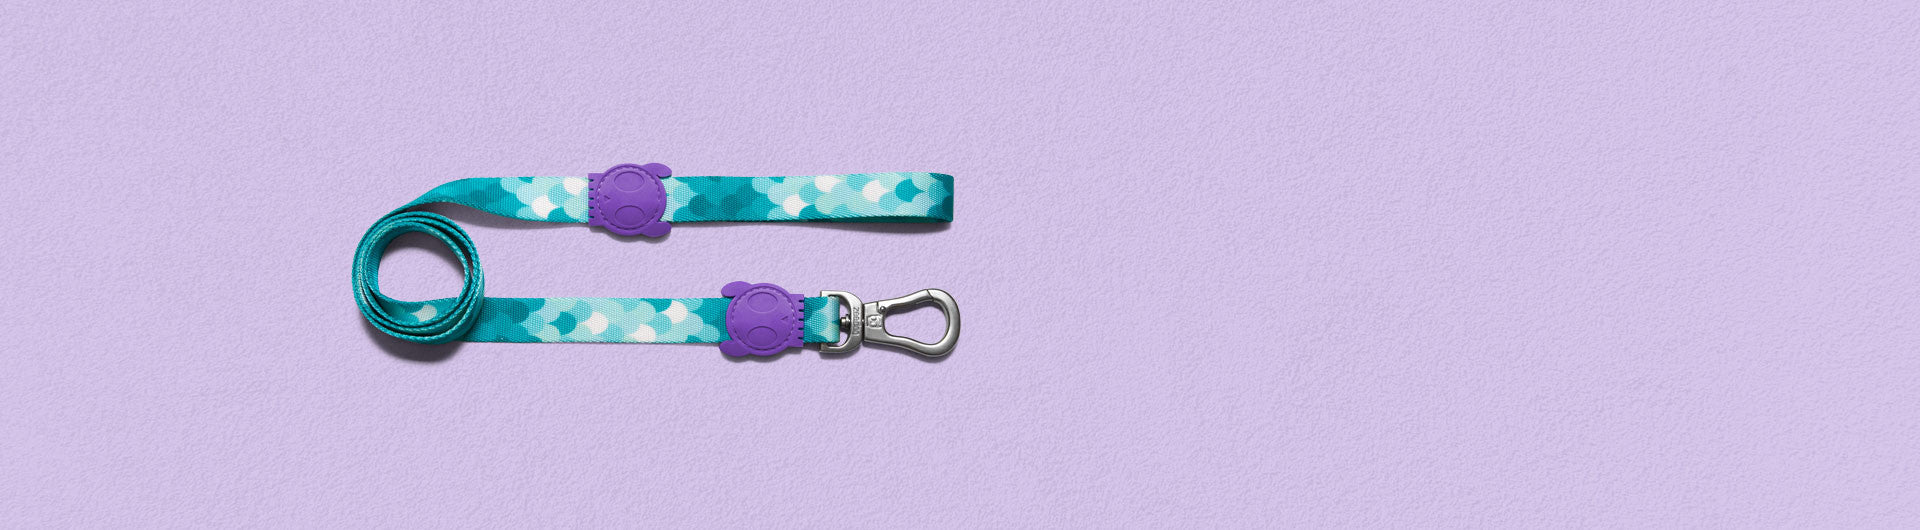 Barracuda Dog Leash | Zee.Dog